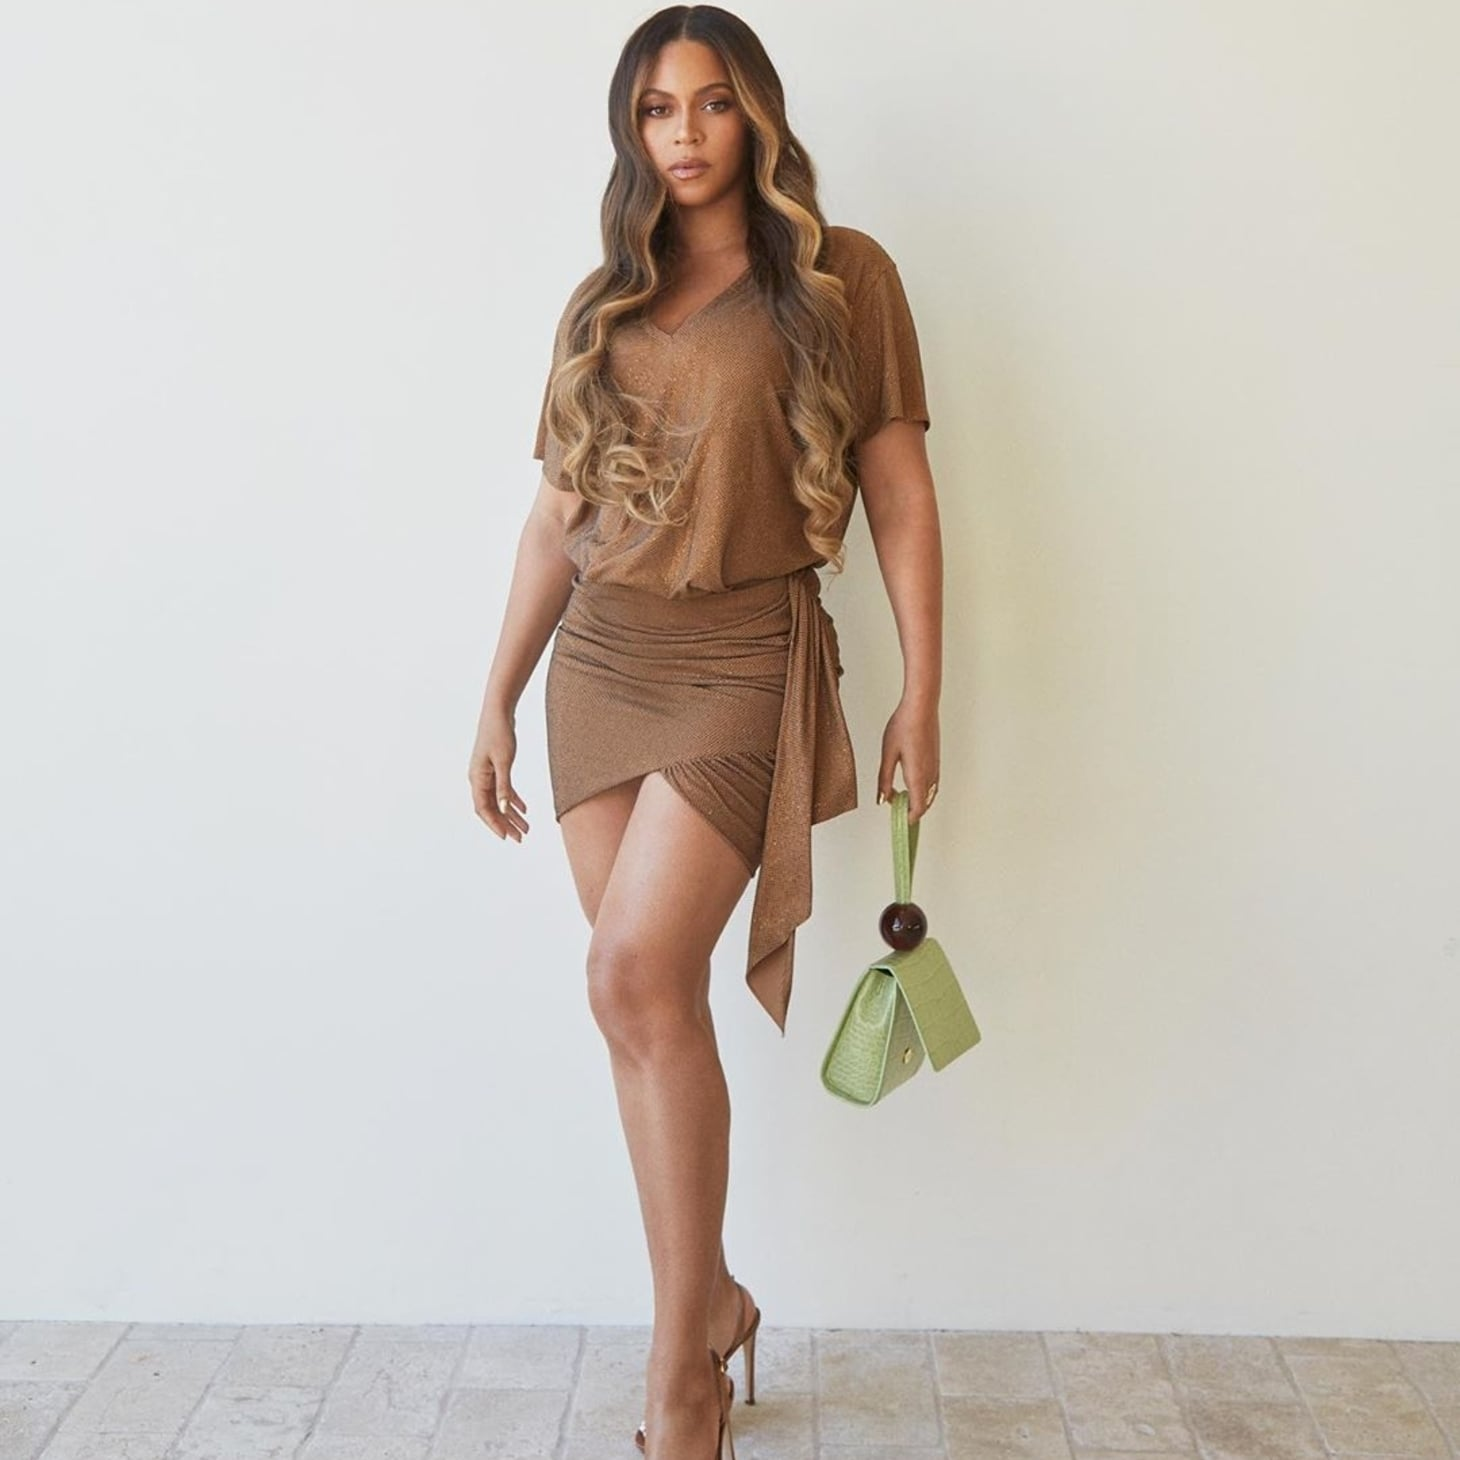 Flipboard: Beyoncé's Neutral Outfit At The NBA Finals 2019